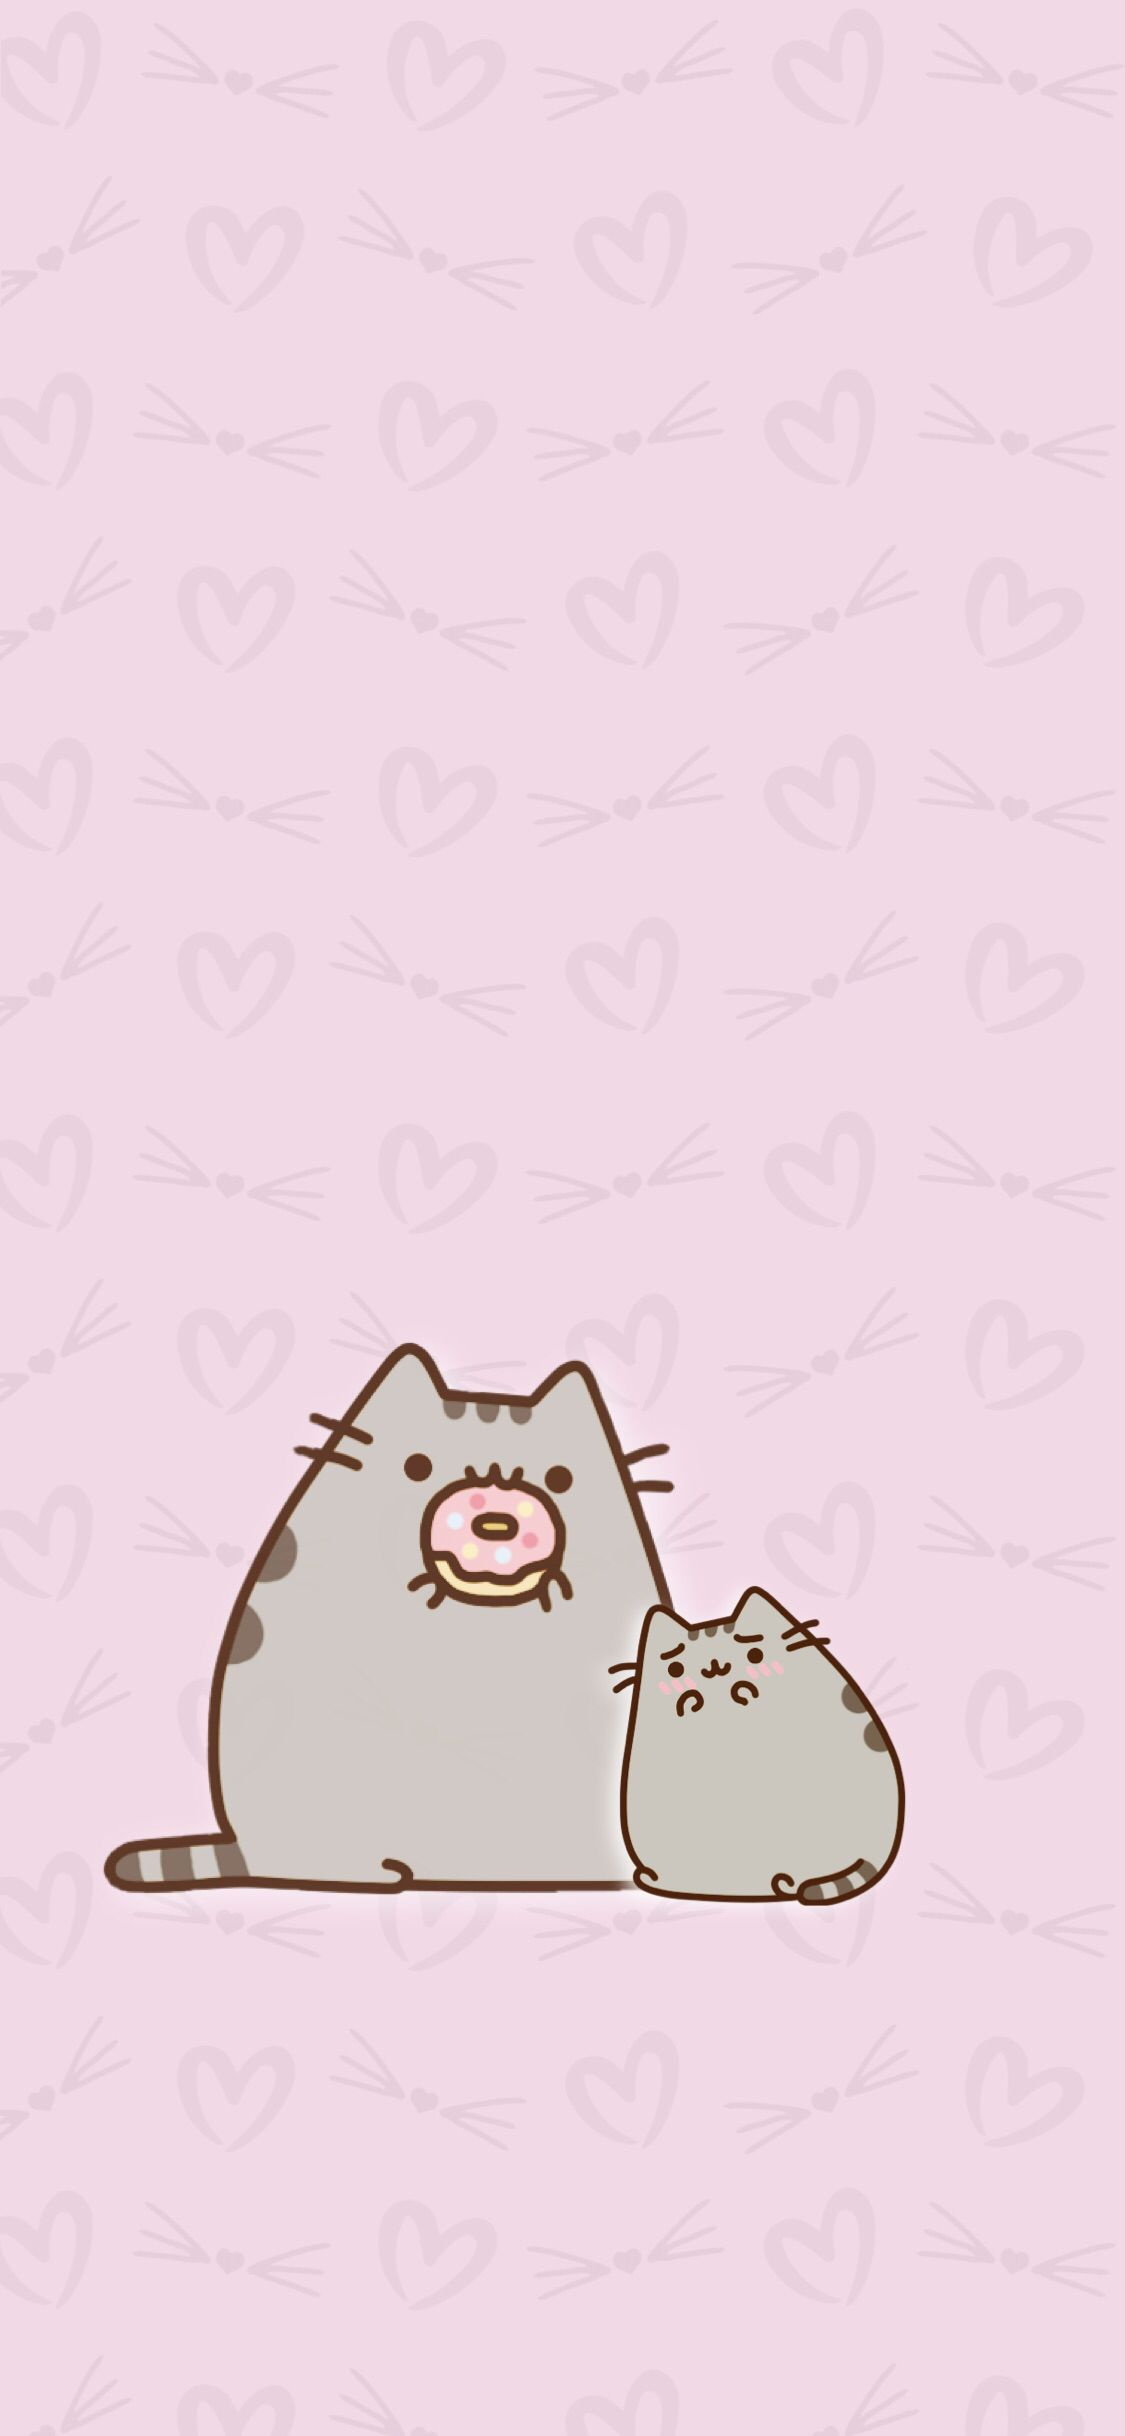 Wallpaper Background Hd Iphone Android Cute Kawaii Pusheen